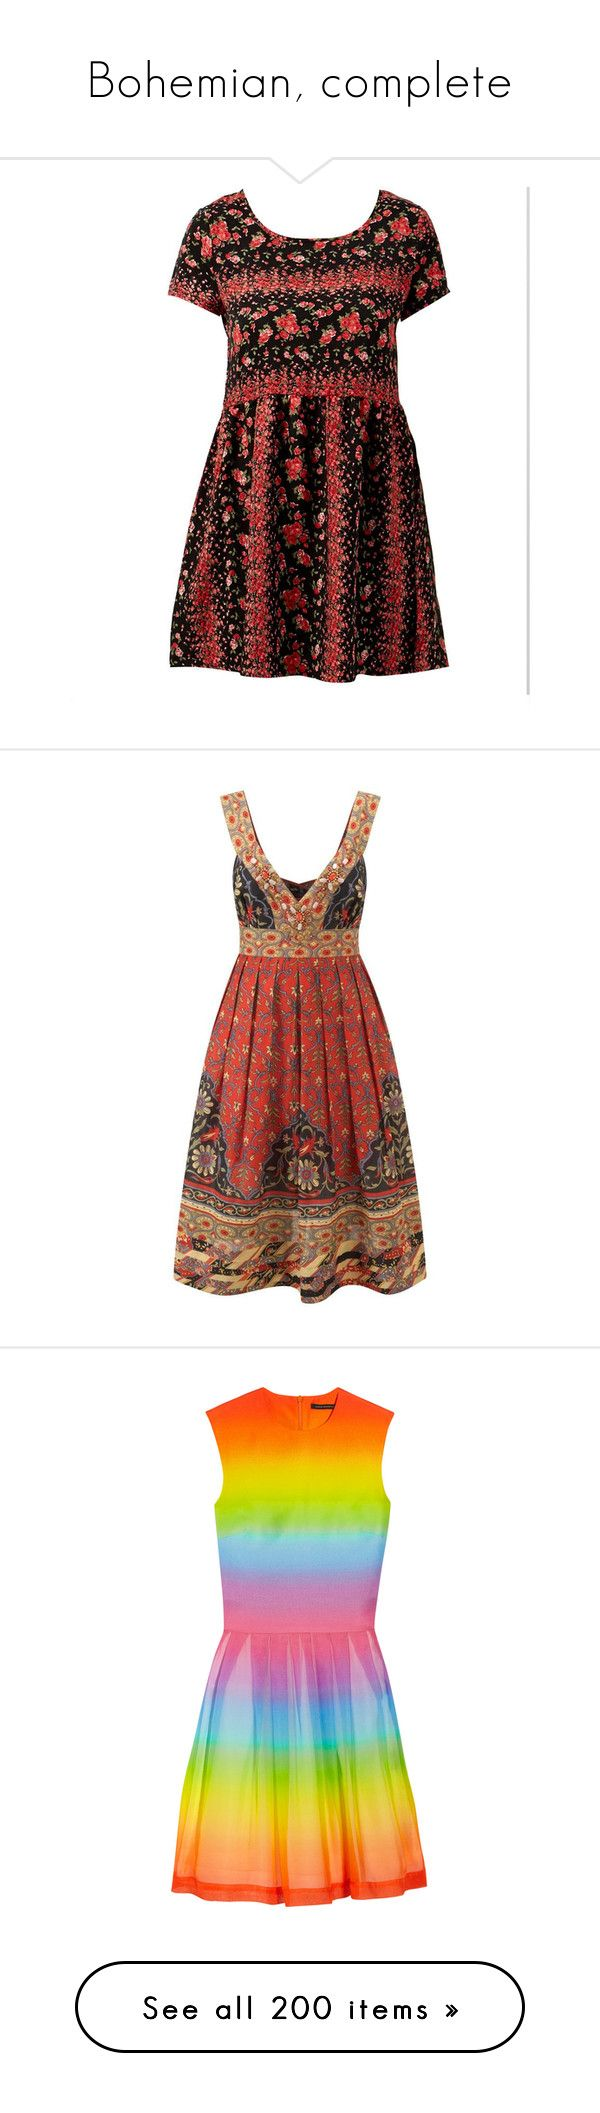 """""""Bohemian, complete"""" by domino-80 ❤ liked on Polyvore featuring dresses, pattern dress, tent dress, babydoll dress, short sleeve babydoll dress, rose print dress, vestidos, short dresses, women's clothing and multi color mini dress"""